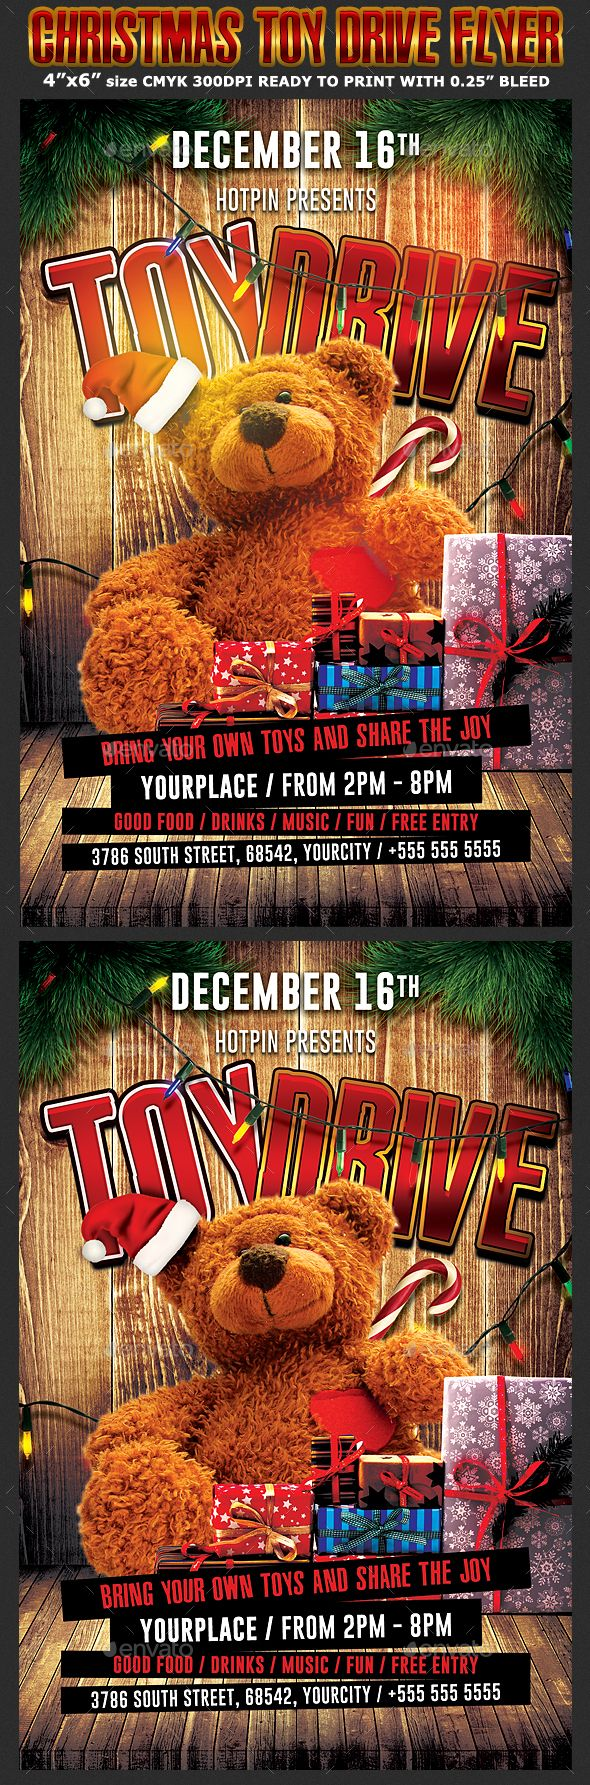 Toys For Tots Flyers Printable : Christmas toy drive flyer template